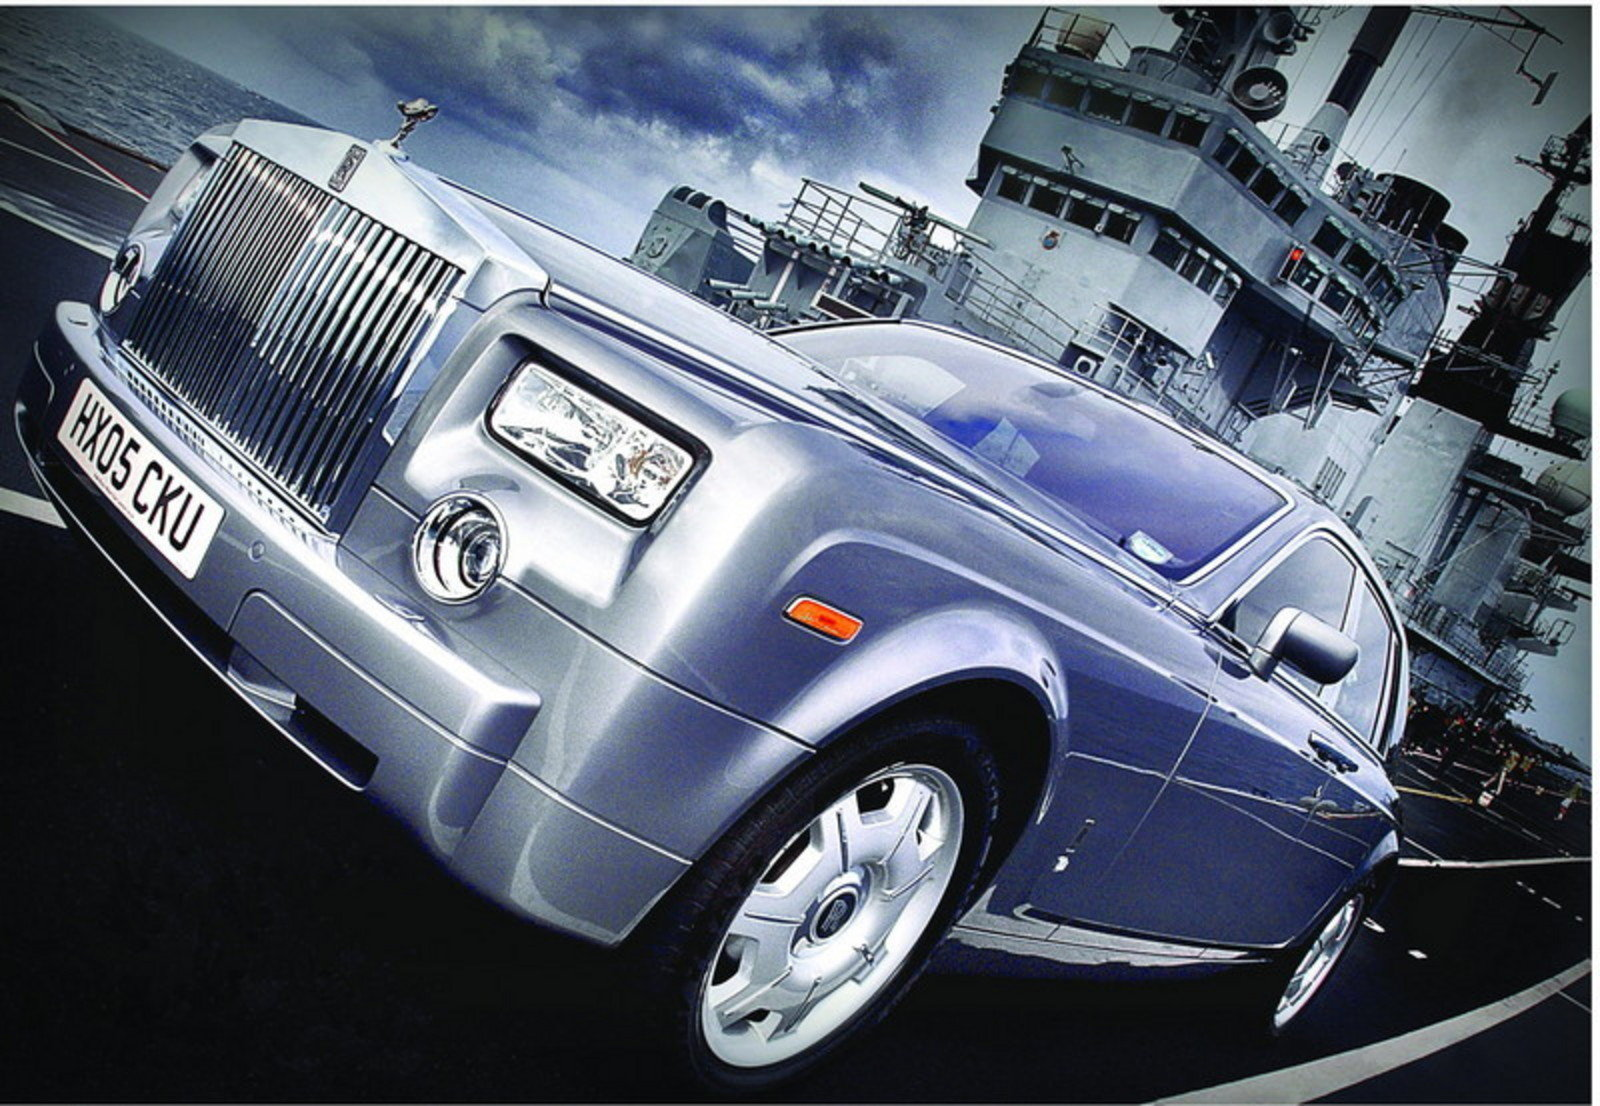 2006 Rolls Royce Royal Navy Flagship Top Speed